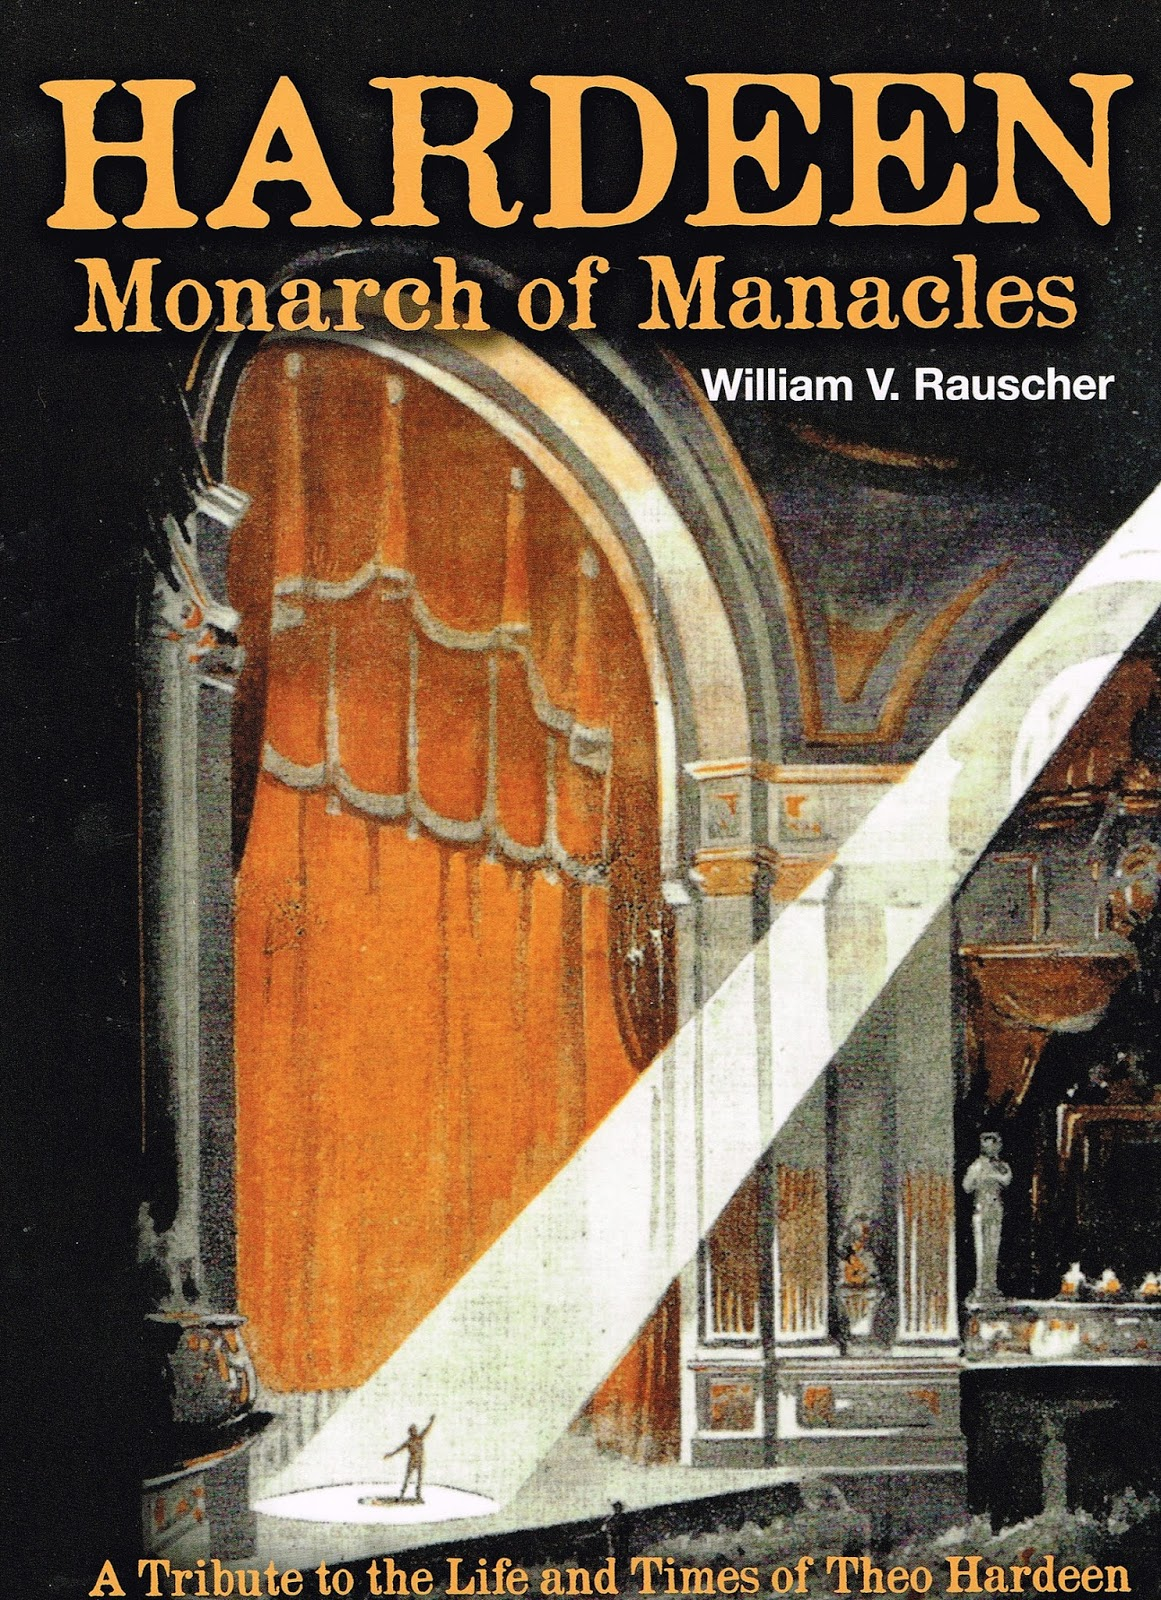 Hardeen Monarch of Manacles by William V Book Rauscher